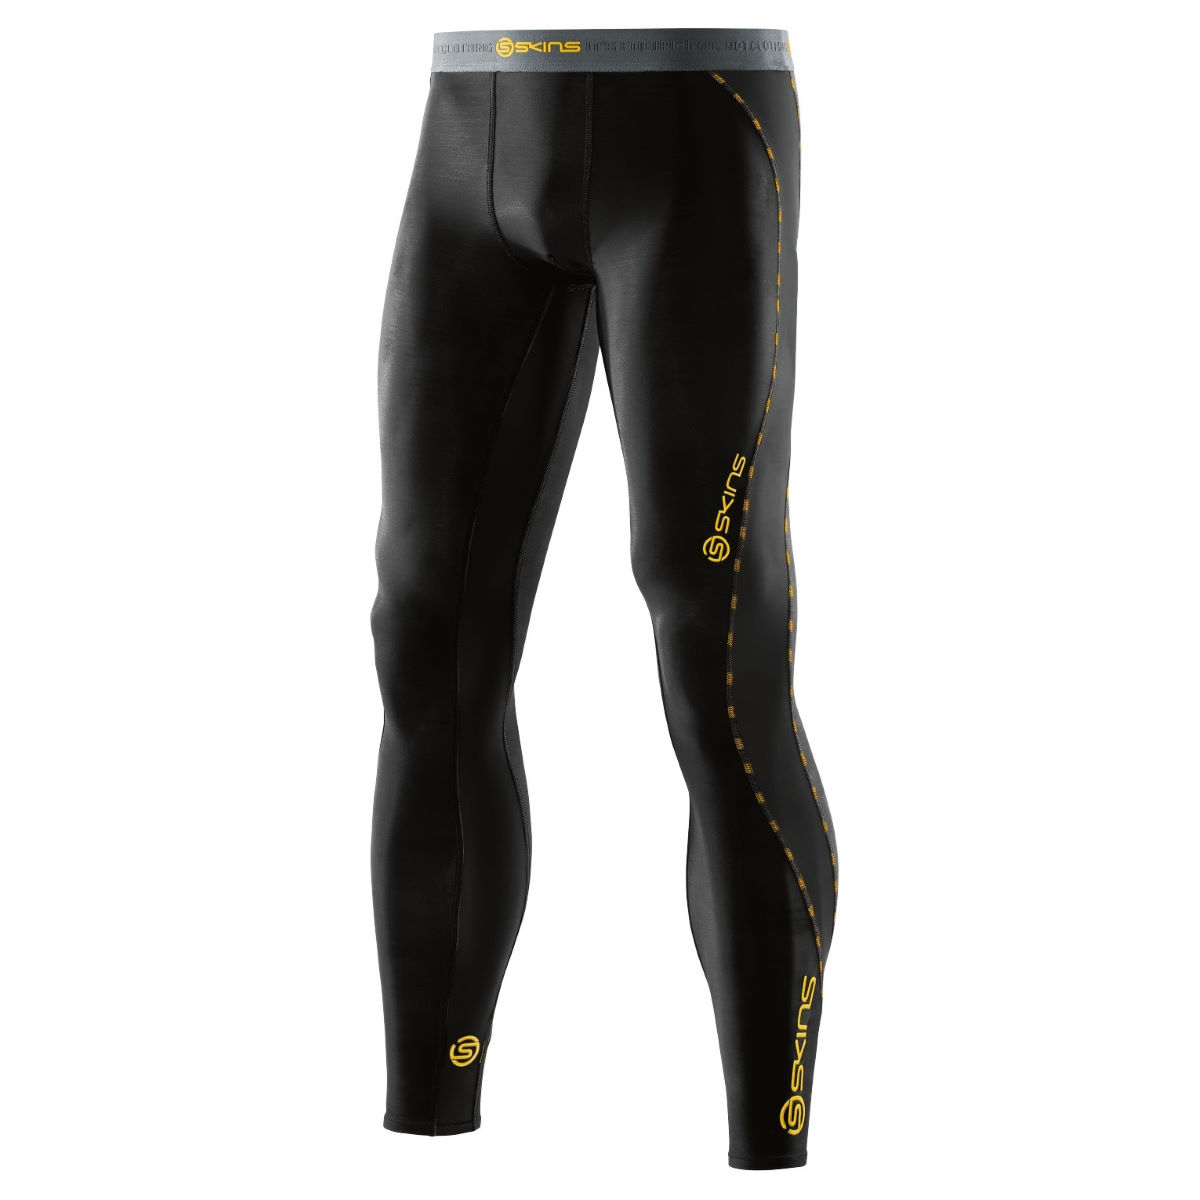 Collant long SKINS DNAmic - XL Noir Sous-vêtements compression